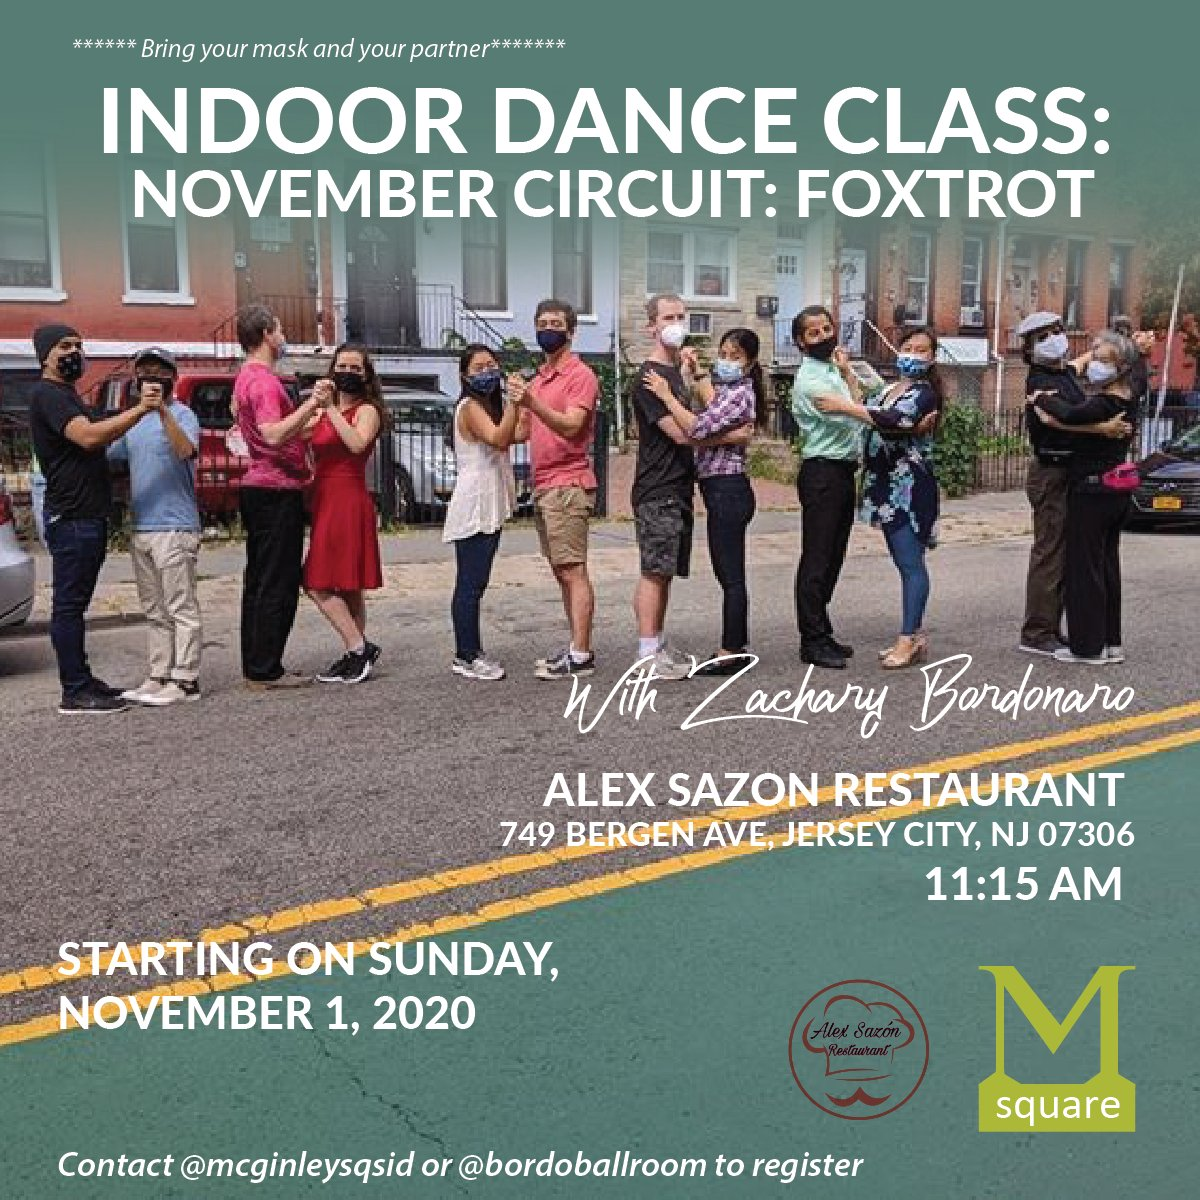 Join us on sunday for our #SundayFunday Activities: 😷  10:00 AM Free #Outdoor #BootCamp by @fourfitnessjc Bring Your Own Mat 📅 11:15 AM #Indoor Dance Class Session with the talented Zachary Bordonaro at Alex Sazon  📅 5:00 PM Jazz At Crema Join Matt Panayides for a great Jazz https://t.co/FxJOSDizcg